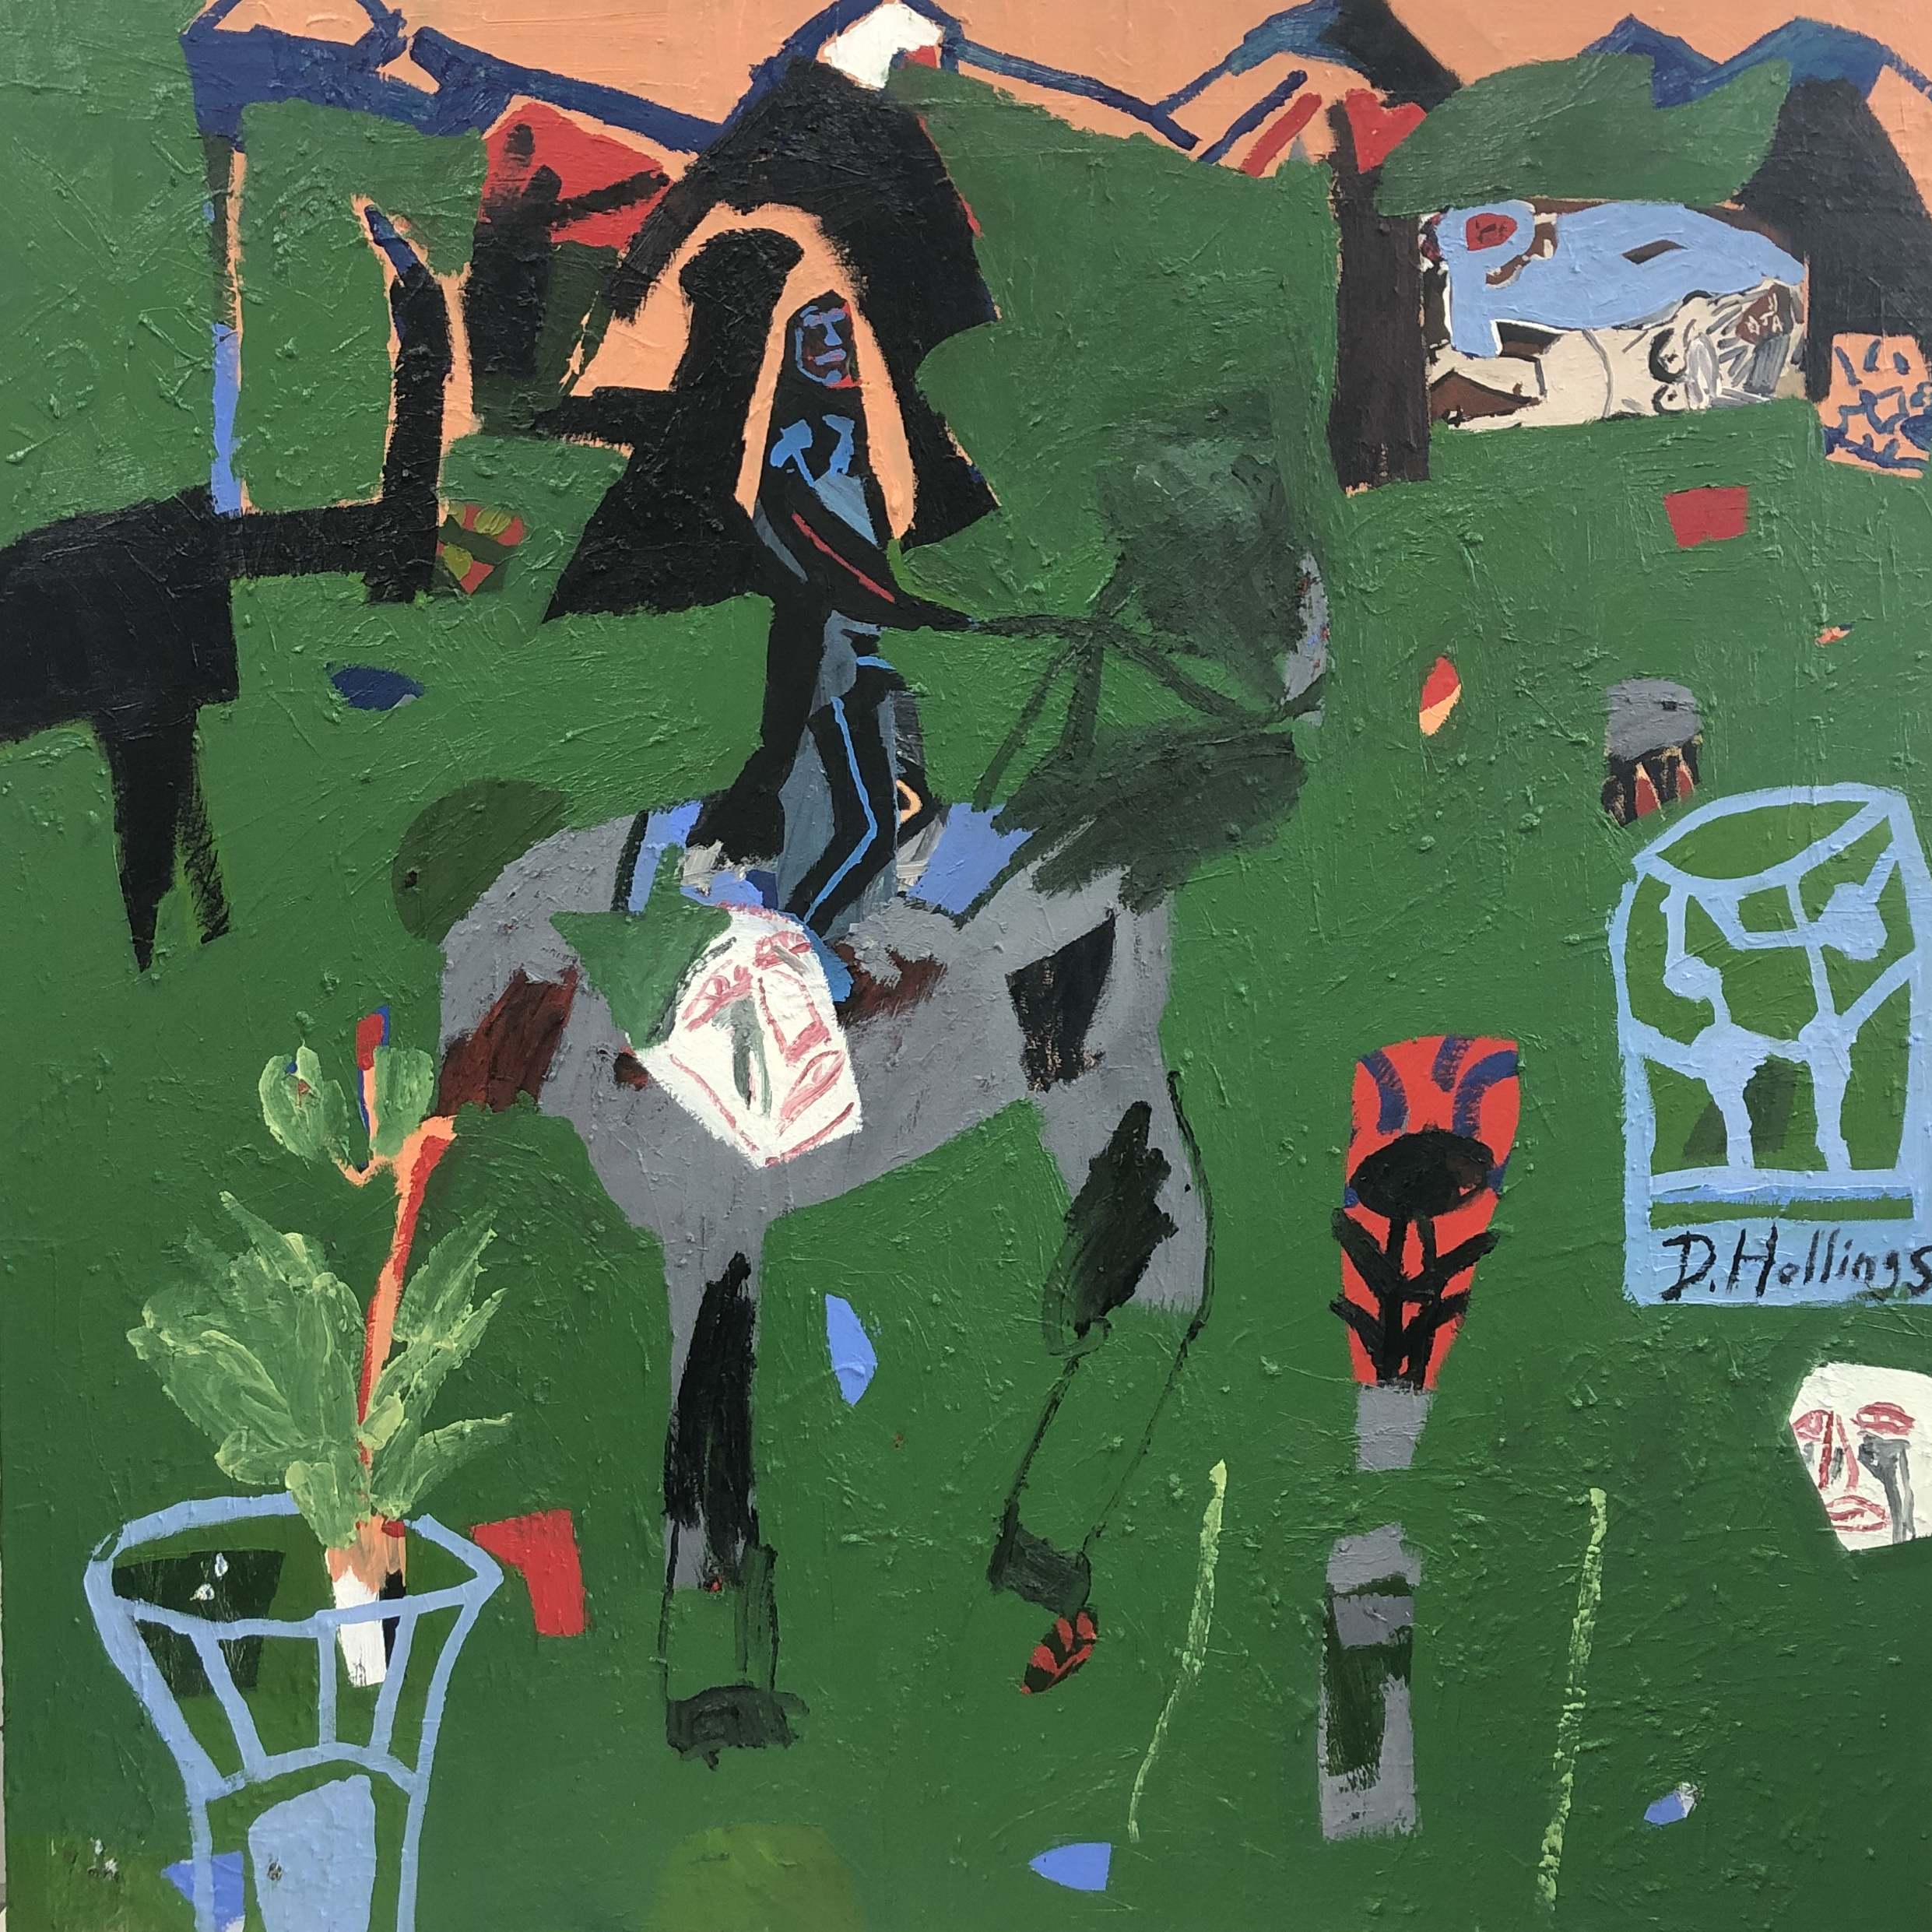 'It's ride or die' (A horse can't put back together a broken vase) 117 x 117cm - oil, posca and oil